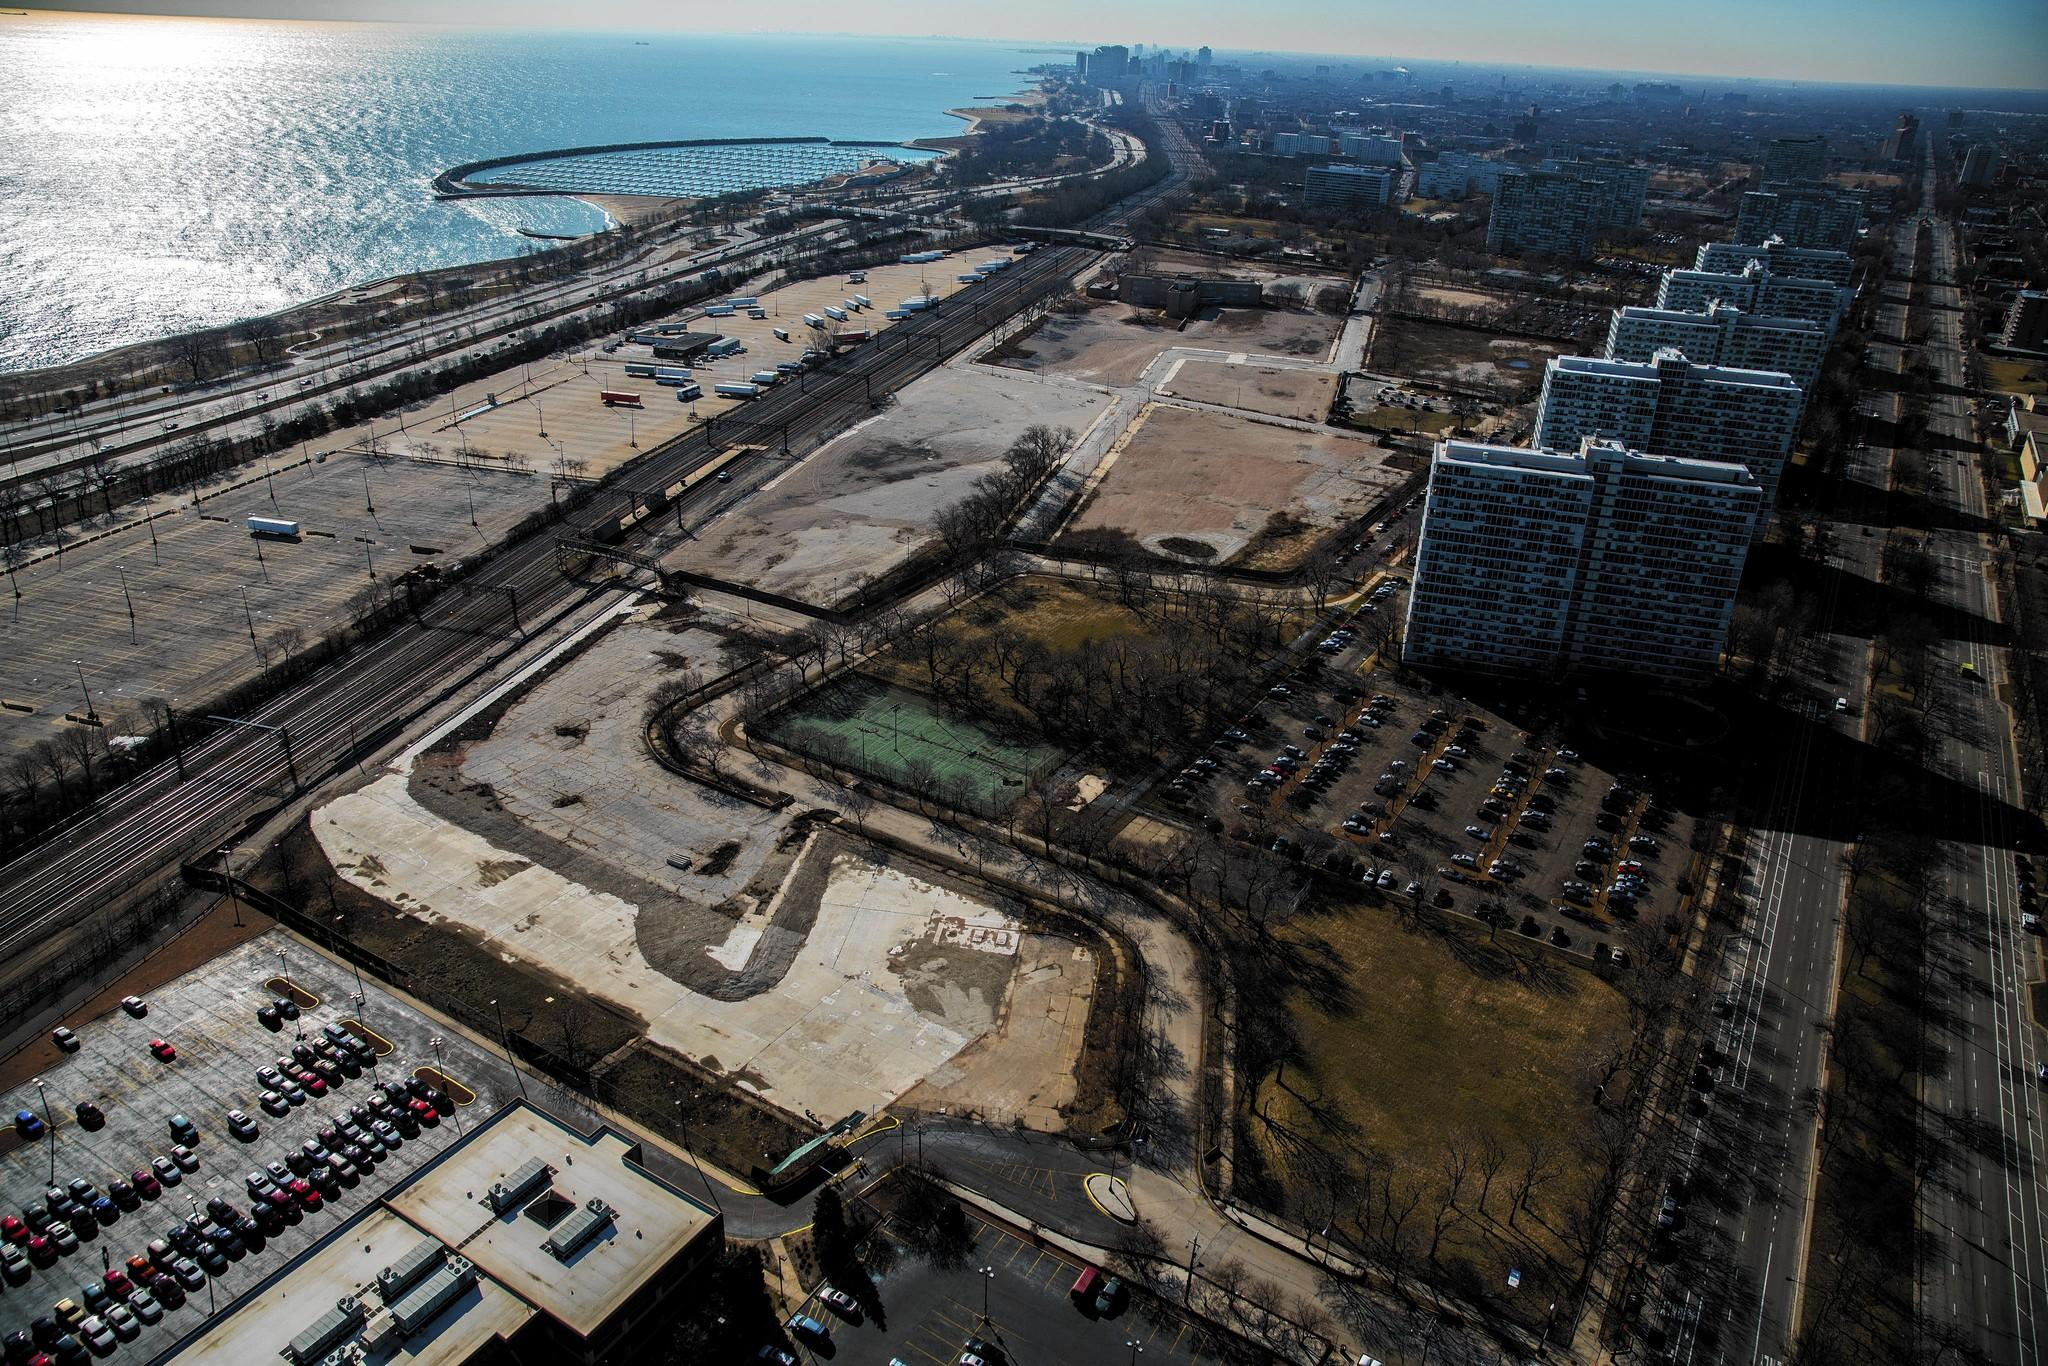 The former Michael Reese Hospital site on Chicago's Near South Side is a candidate location to house President Barack Obama's presidential library.